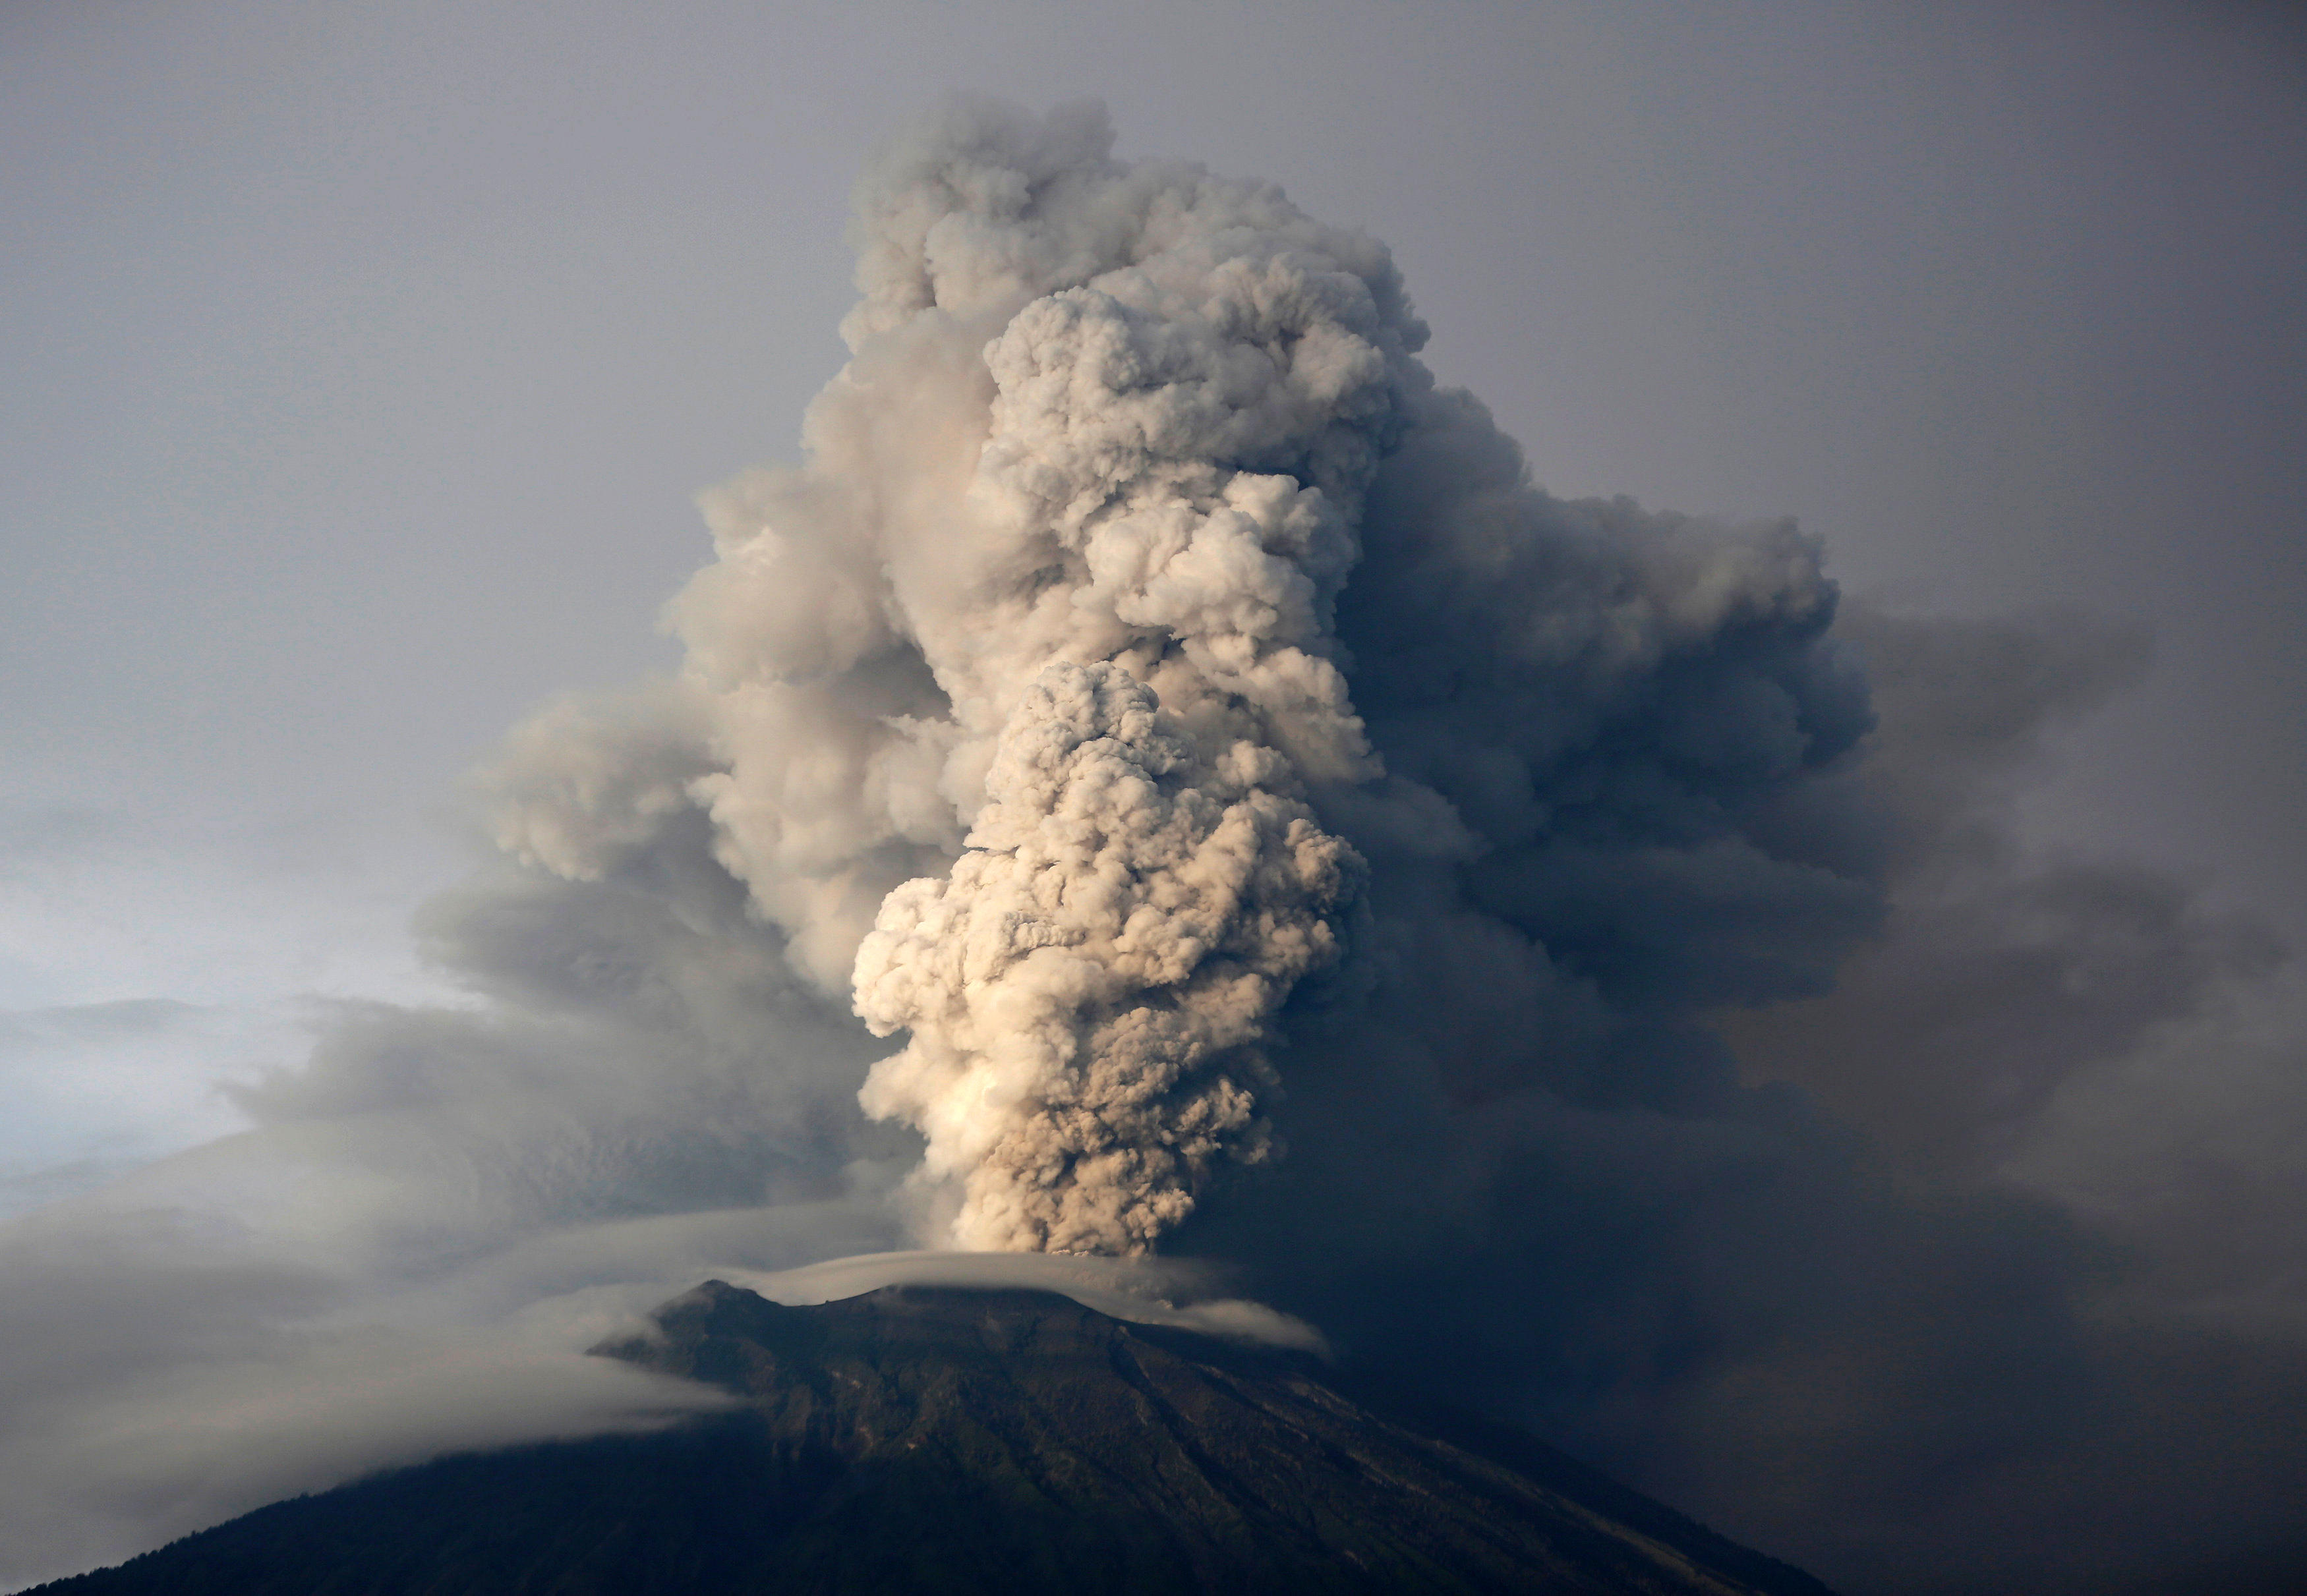 Mount Agung Bali Volcano Eruption Spits Ash Over Two Miles High